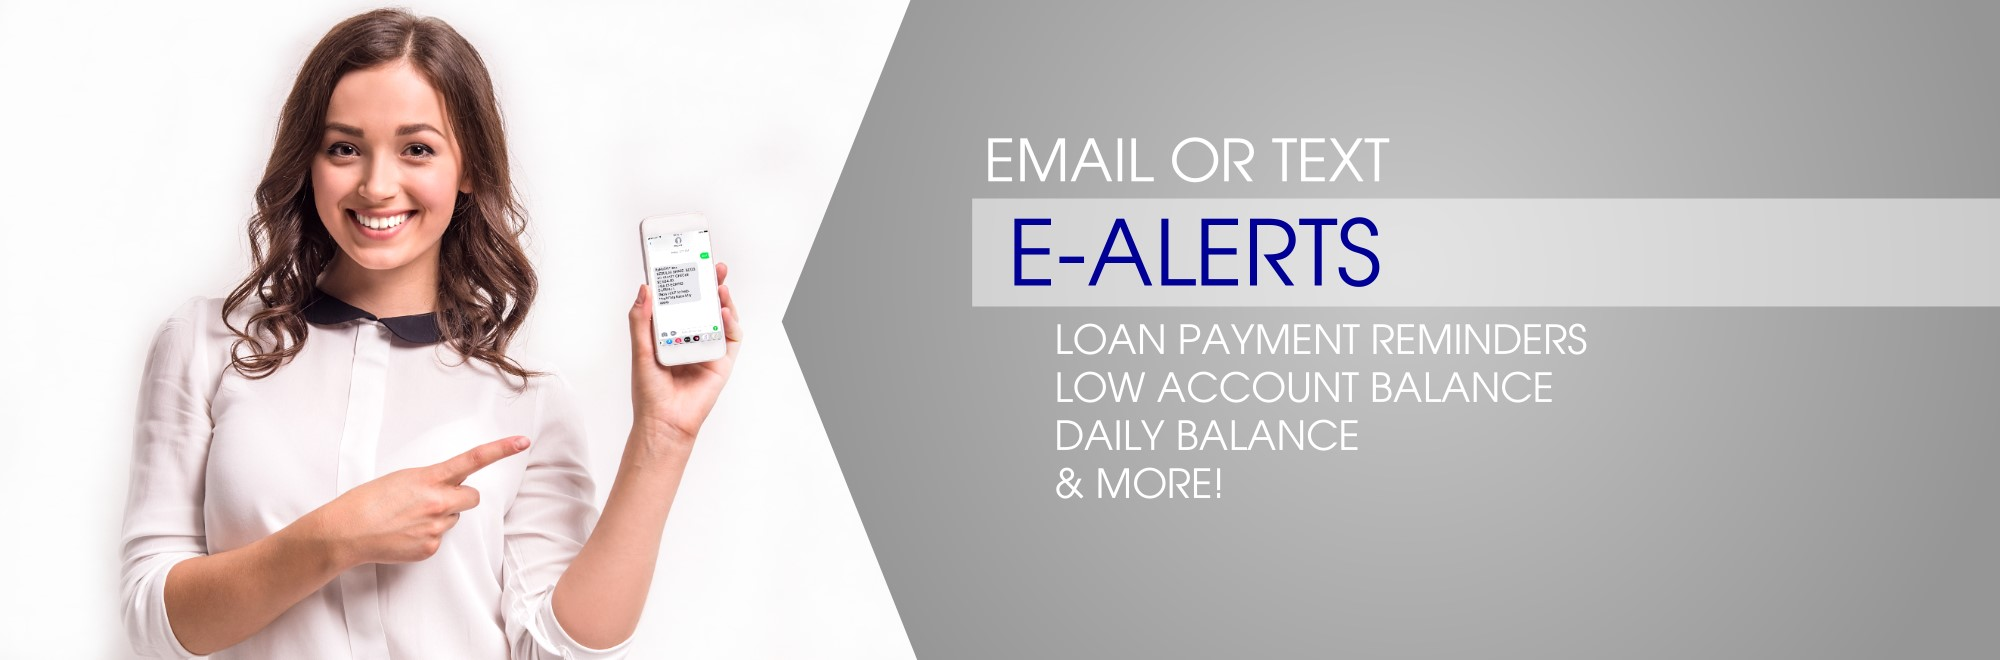 young woman pointing to a cellphone in her hand with text email or text e-alerts. loan payment reminders, low account balance, daily balance and more.